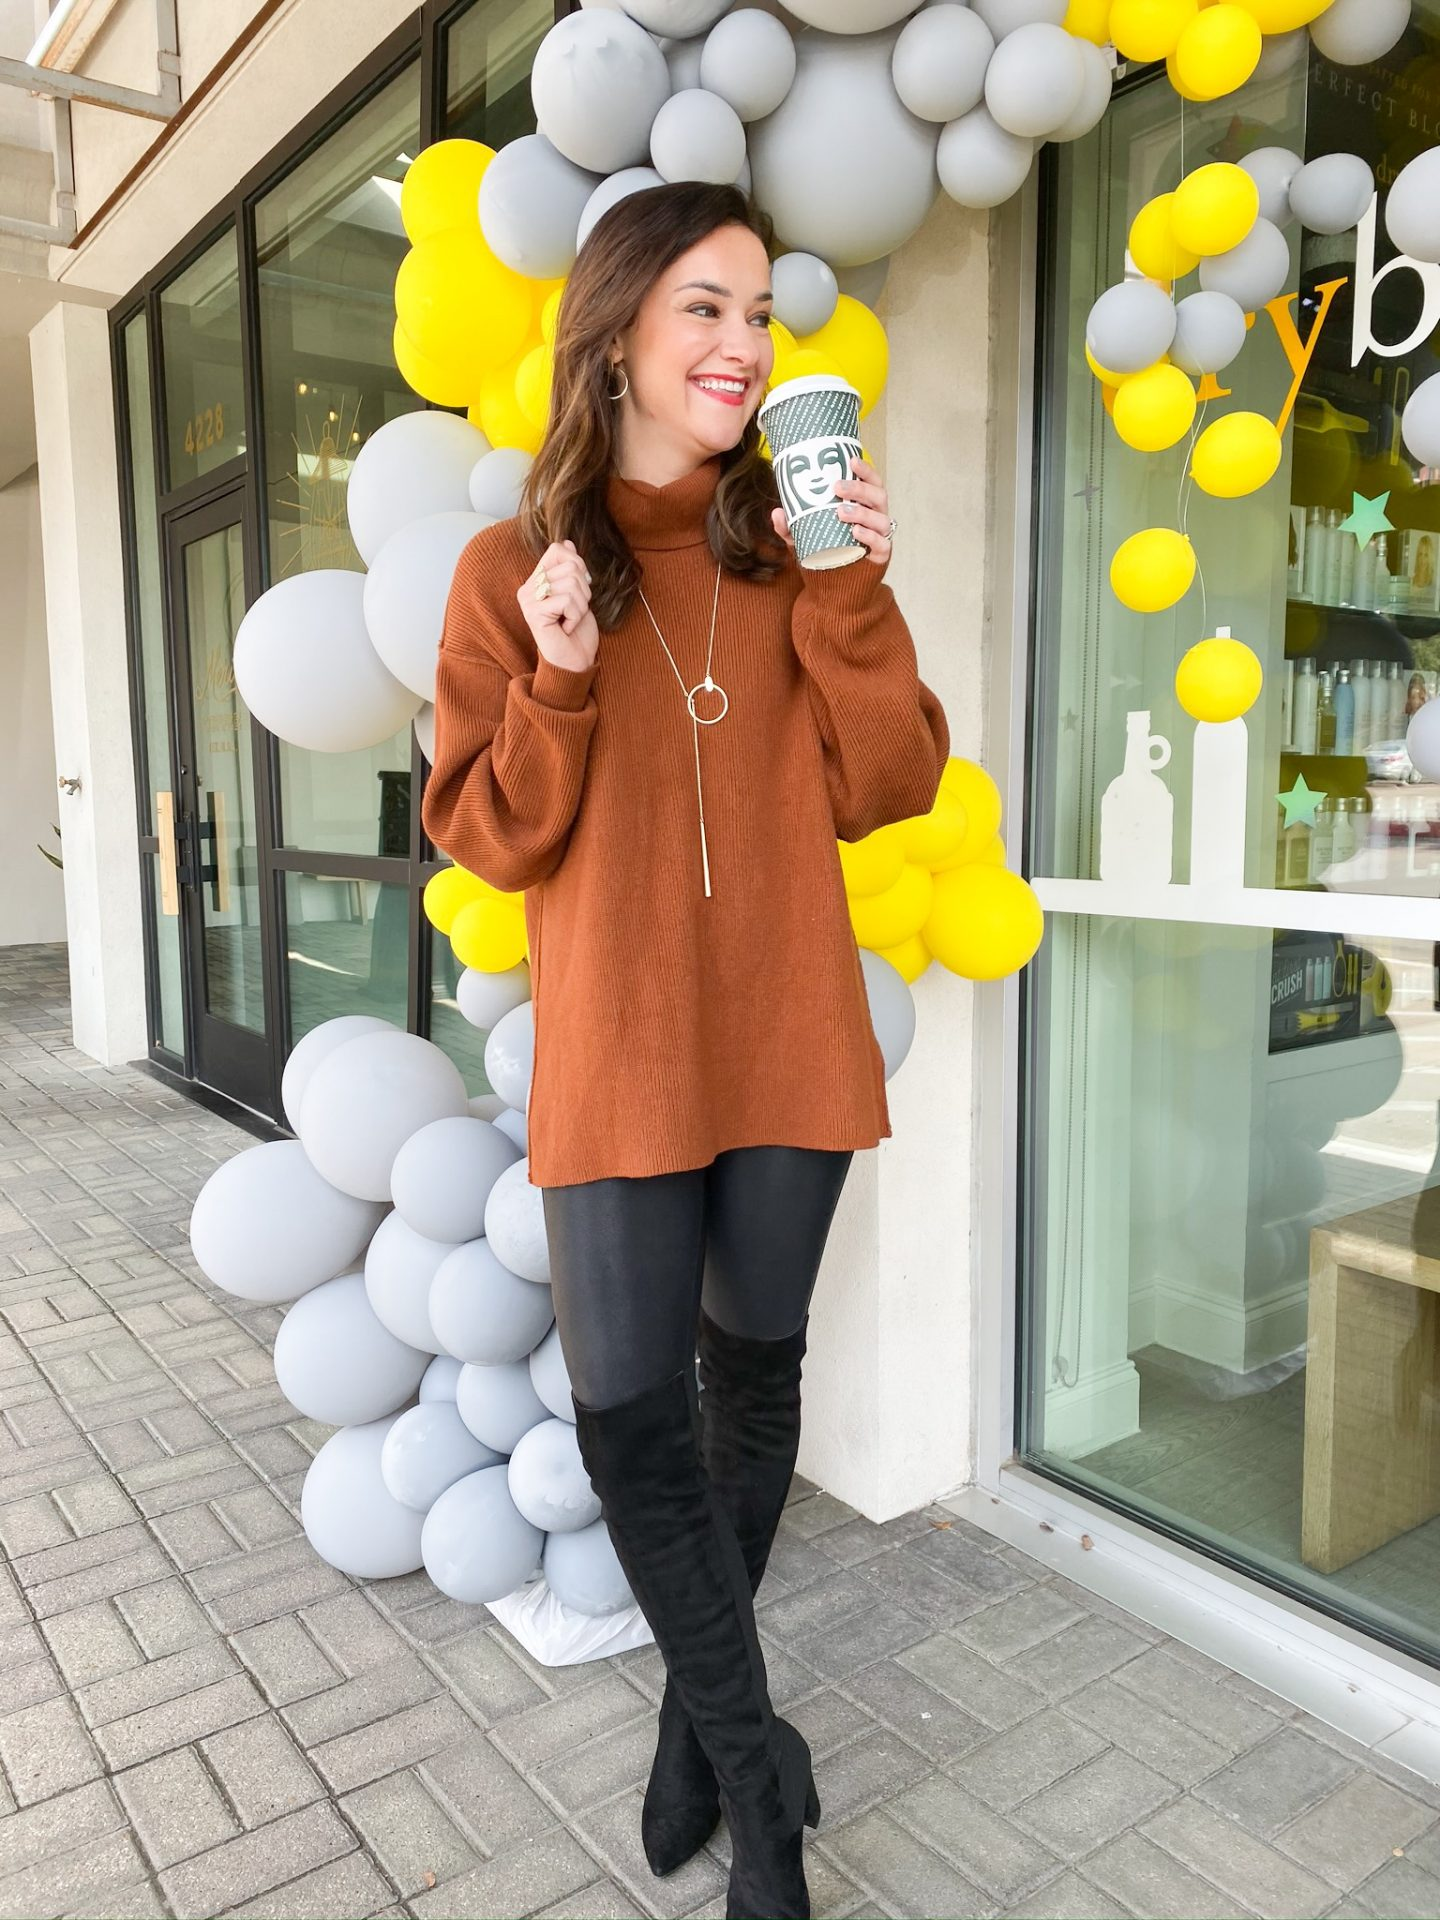 Holiday Honey Hustle Challenge Week 4 + Holiday Starbucks Drinks with Macros by Life + Style blogger, Heather Brown // My Life Well Loved